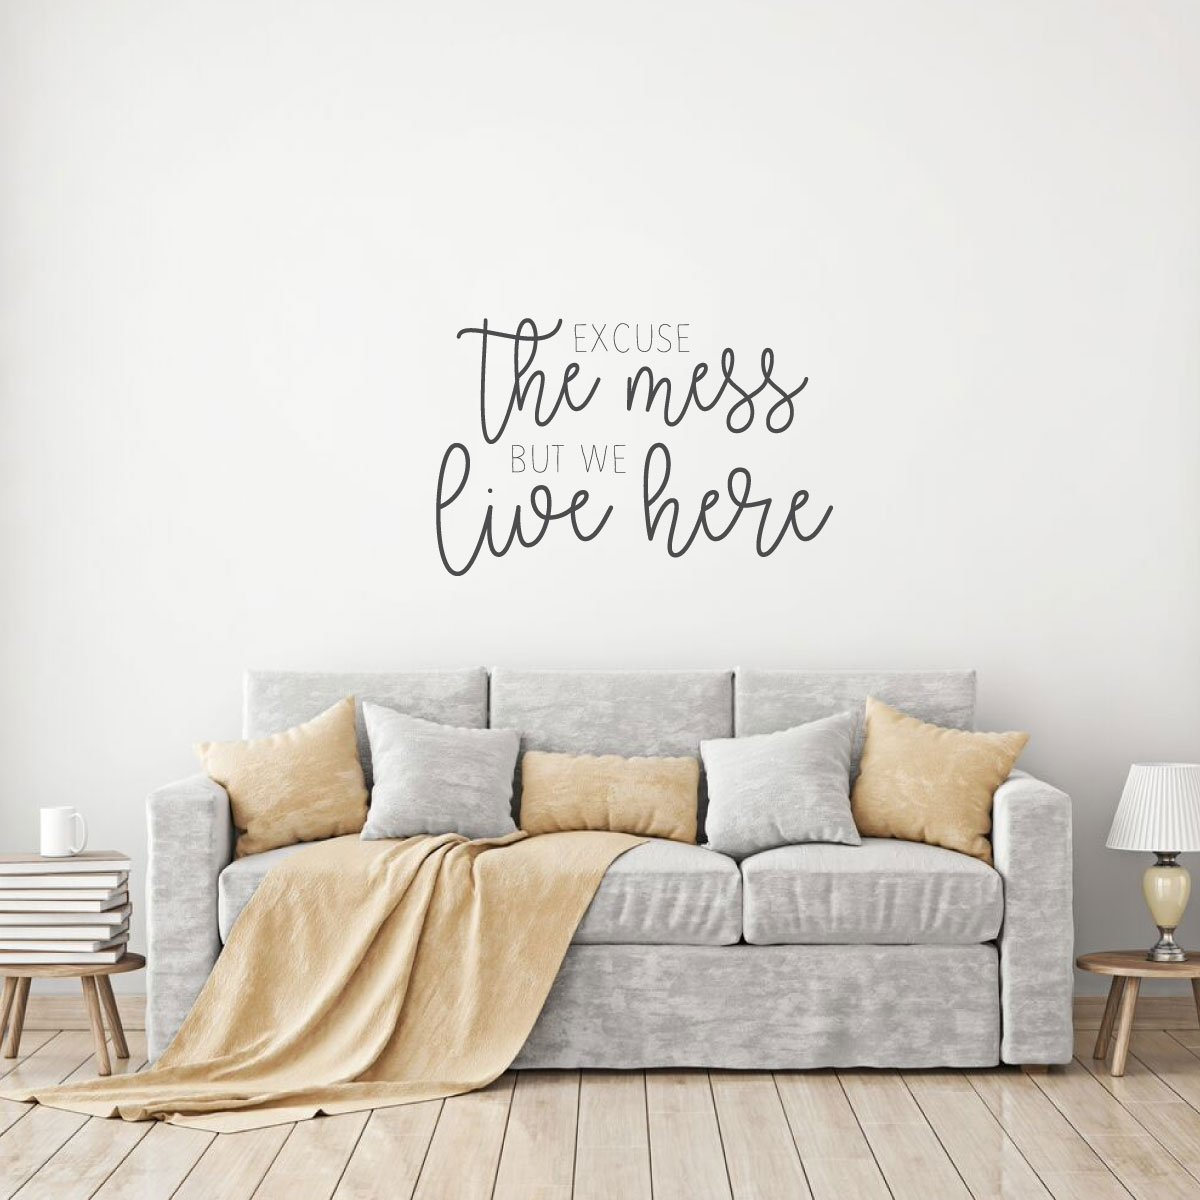 Excuse The Mess Quote For Living Room Vinyl Home Decor Wall Decal